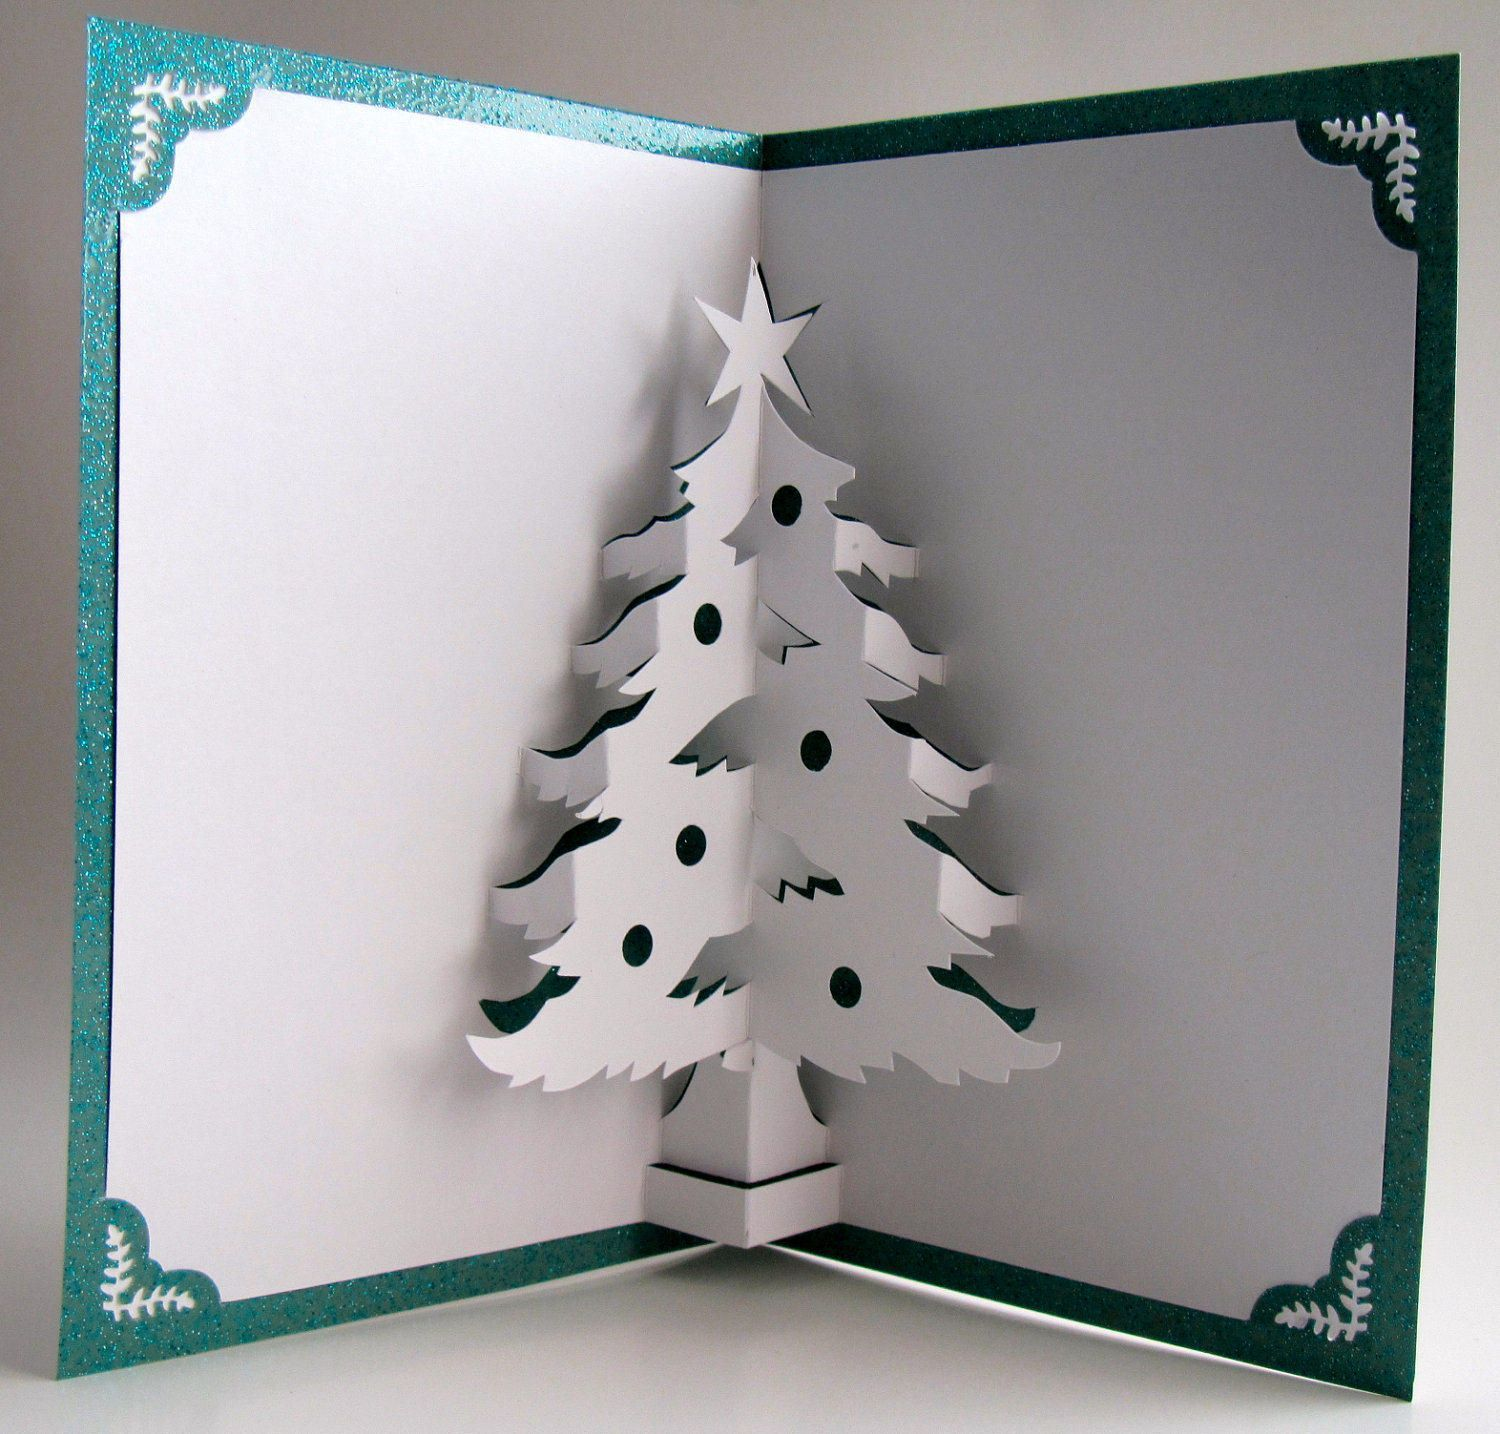 The Excellent Christmas Card Pop Up Christmas Cards Diy Christmas Cards Regarding 3d C Diy Christmas Cards Pop Up Christmas Card Design Christmas Tree Cards